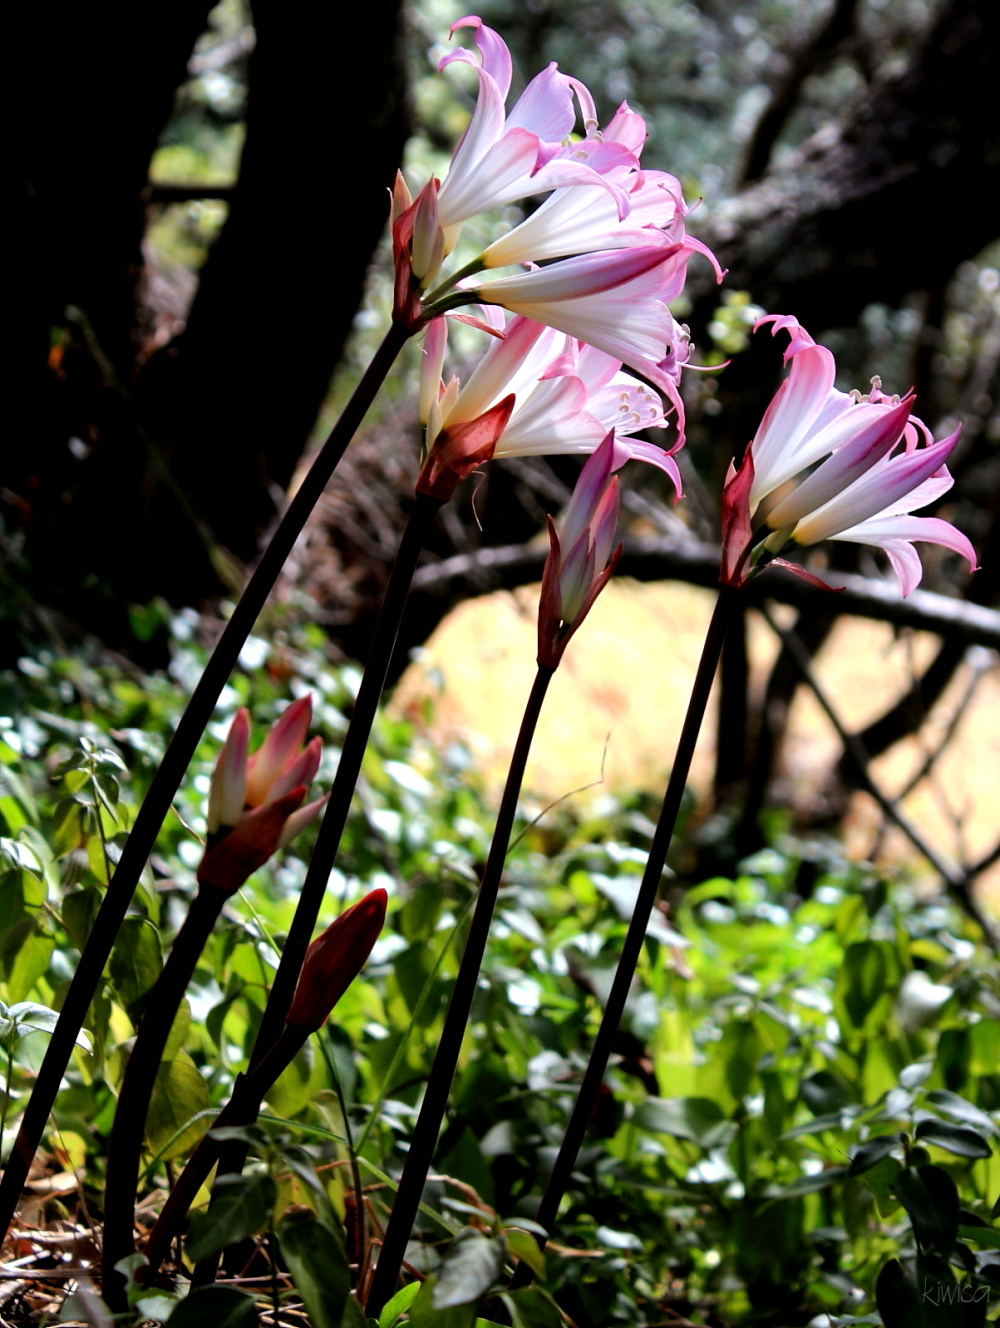 March lilies in April